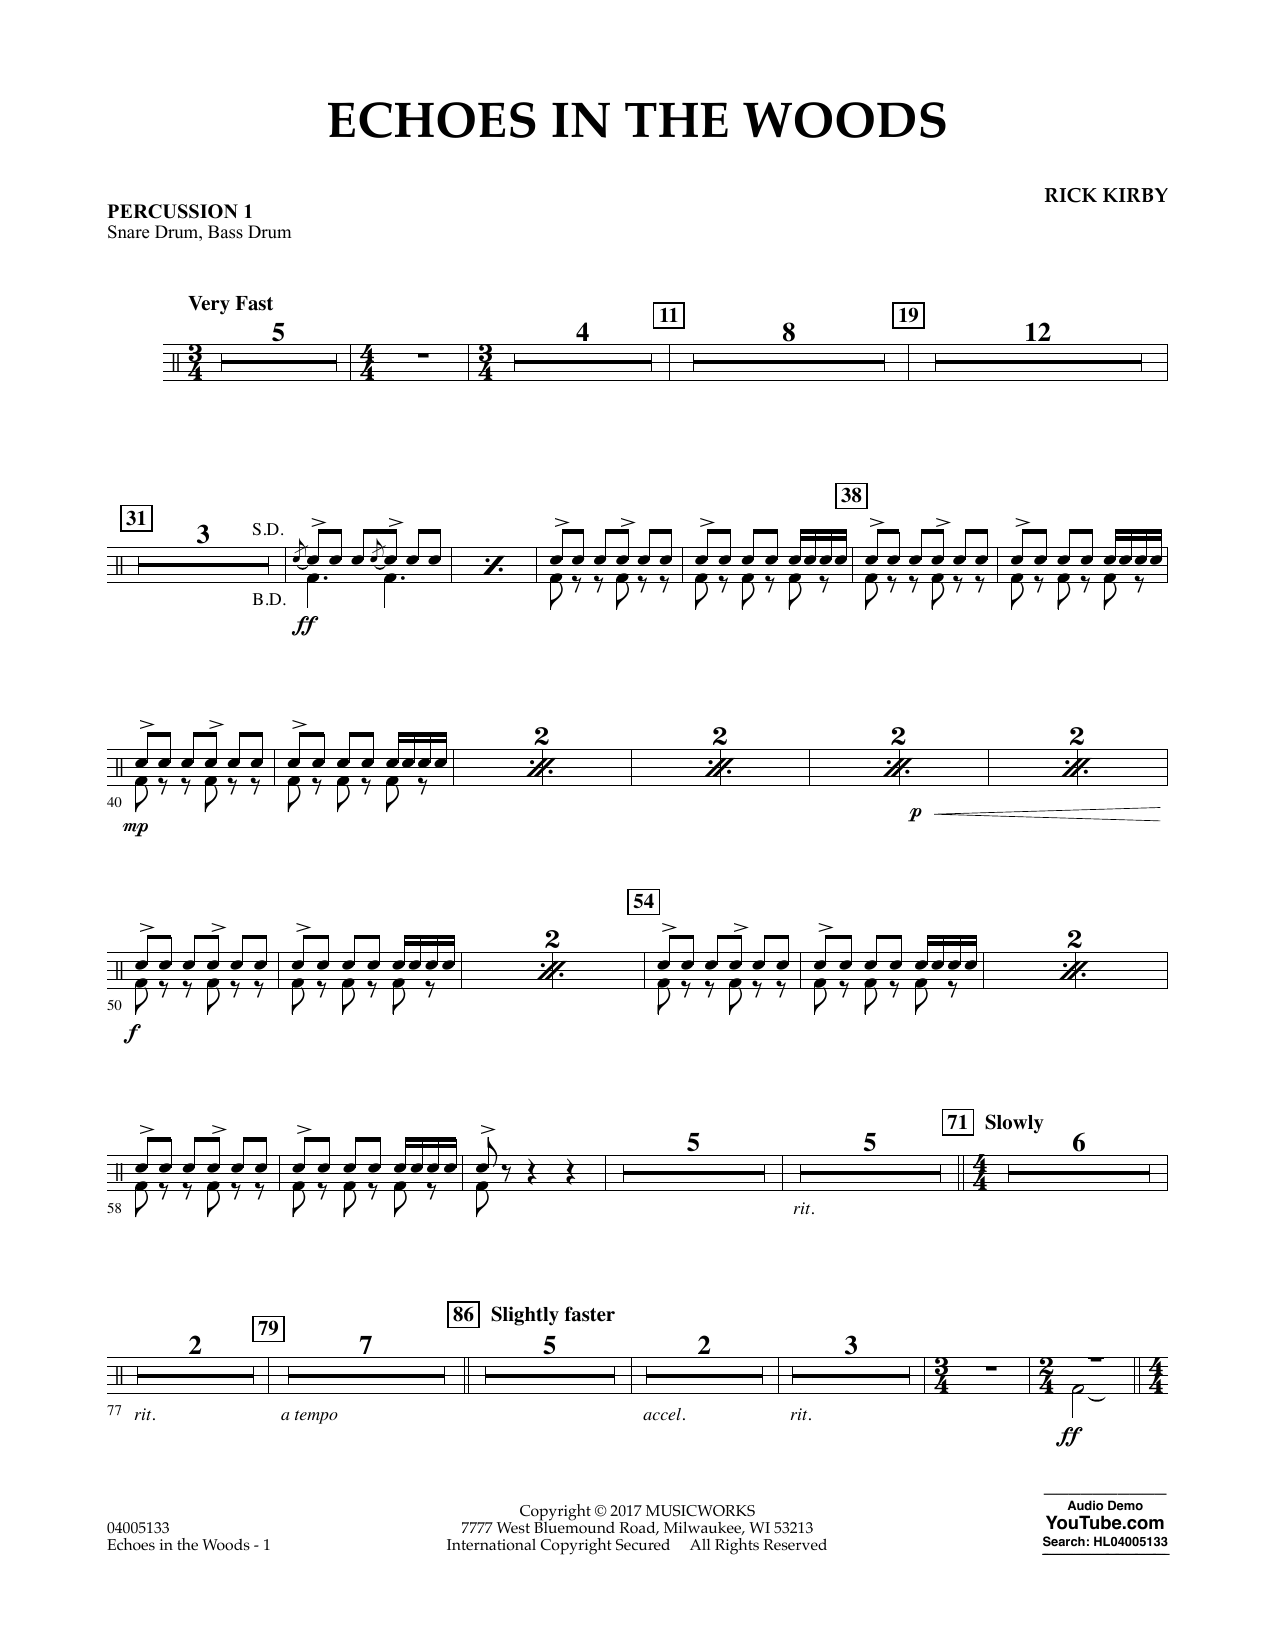 Rick Kirby Echoes in the Woods - Percussion 1 sheet music notes and chords. Download Printable PDF.